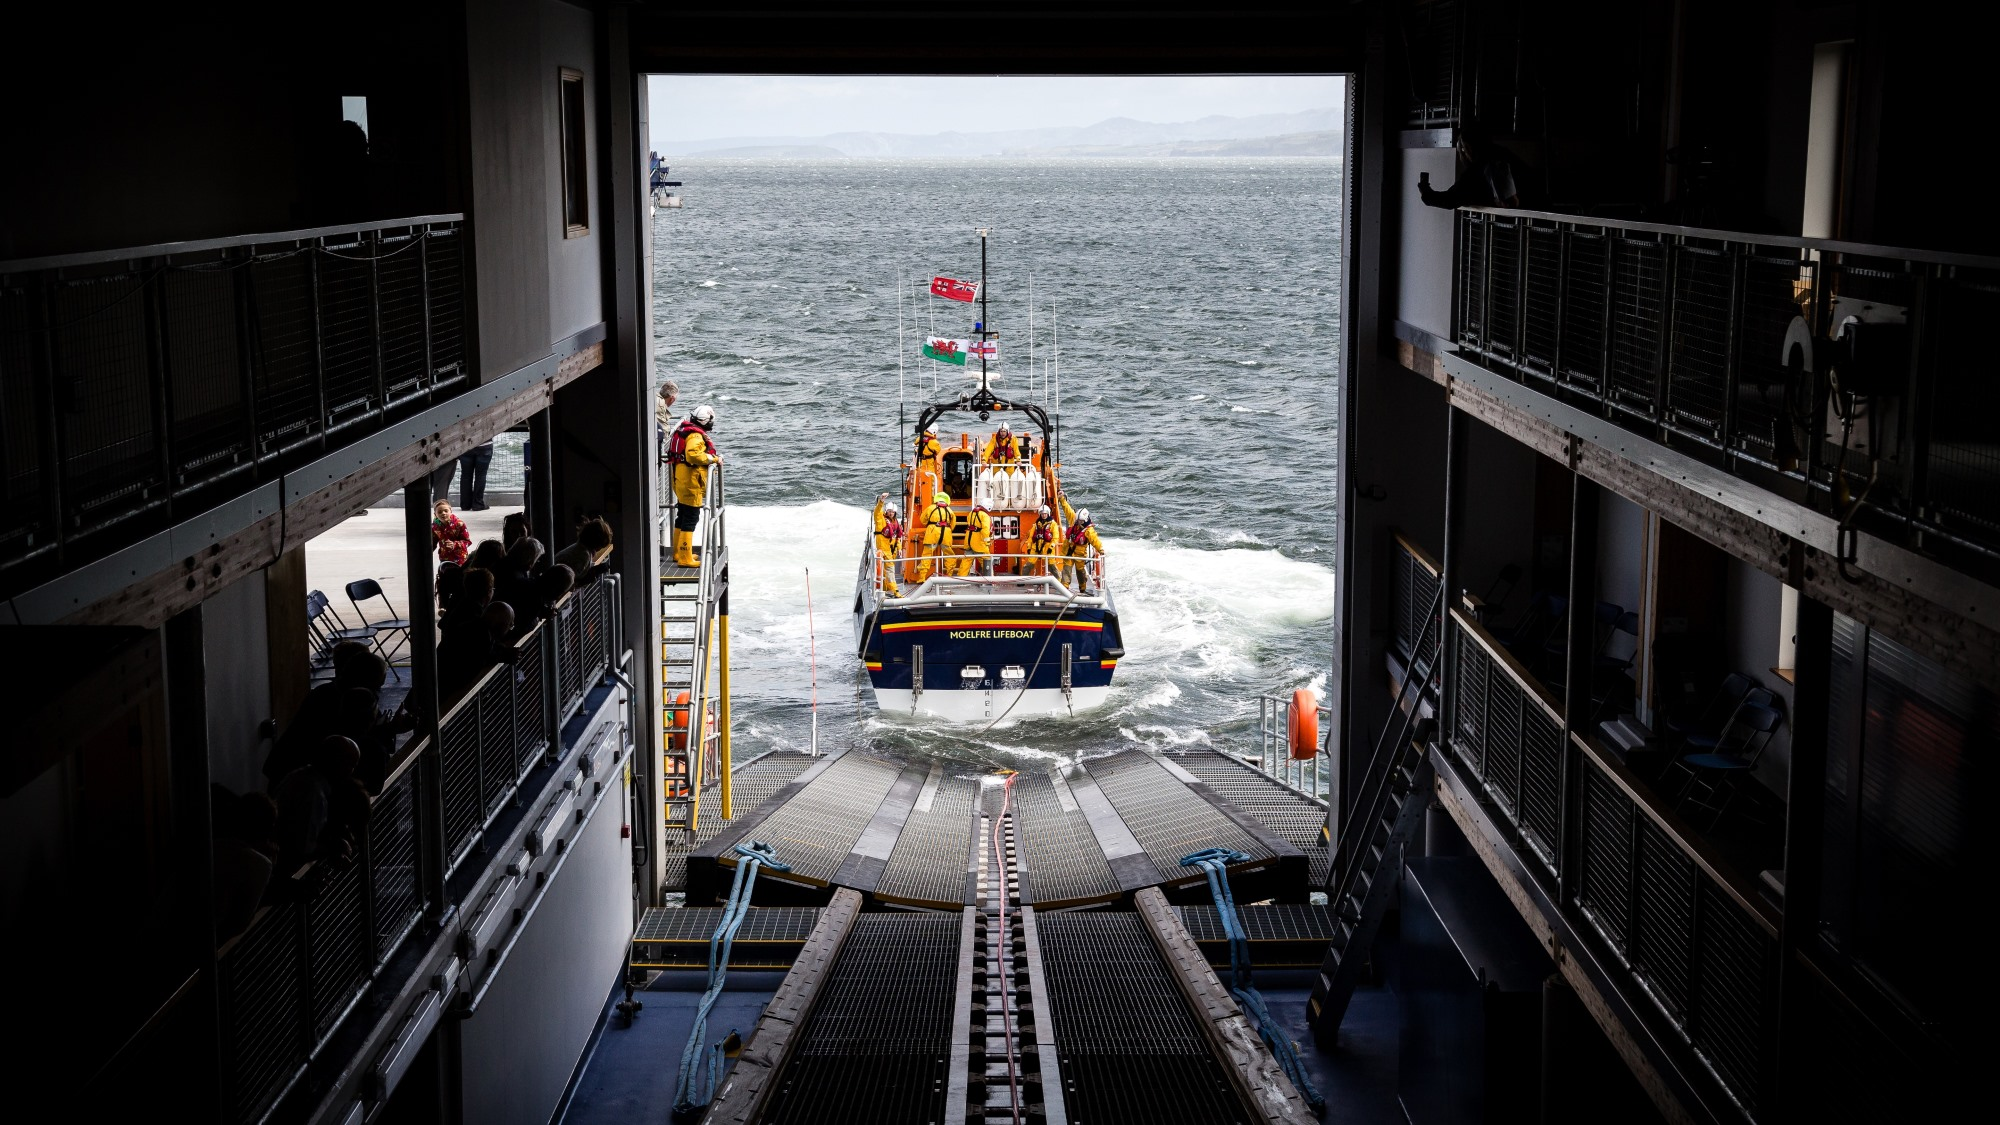 View from inside Moelfre Lifeboat Station of the station's Tamar class lifeboat, Kiwi 16-25, being recovered up the slipway